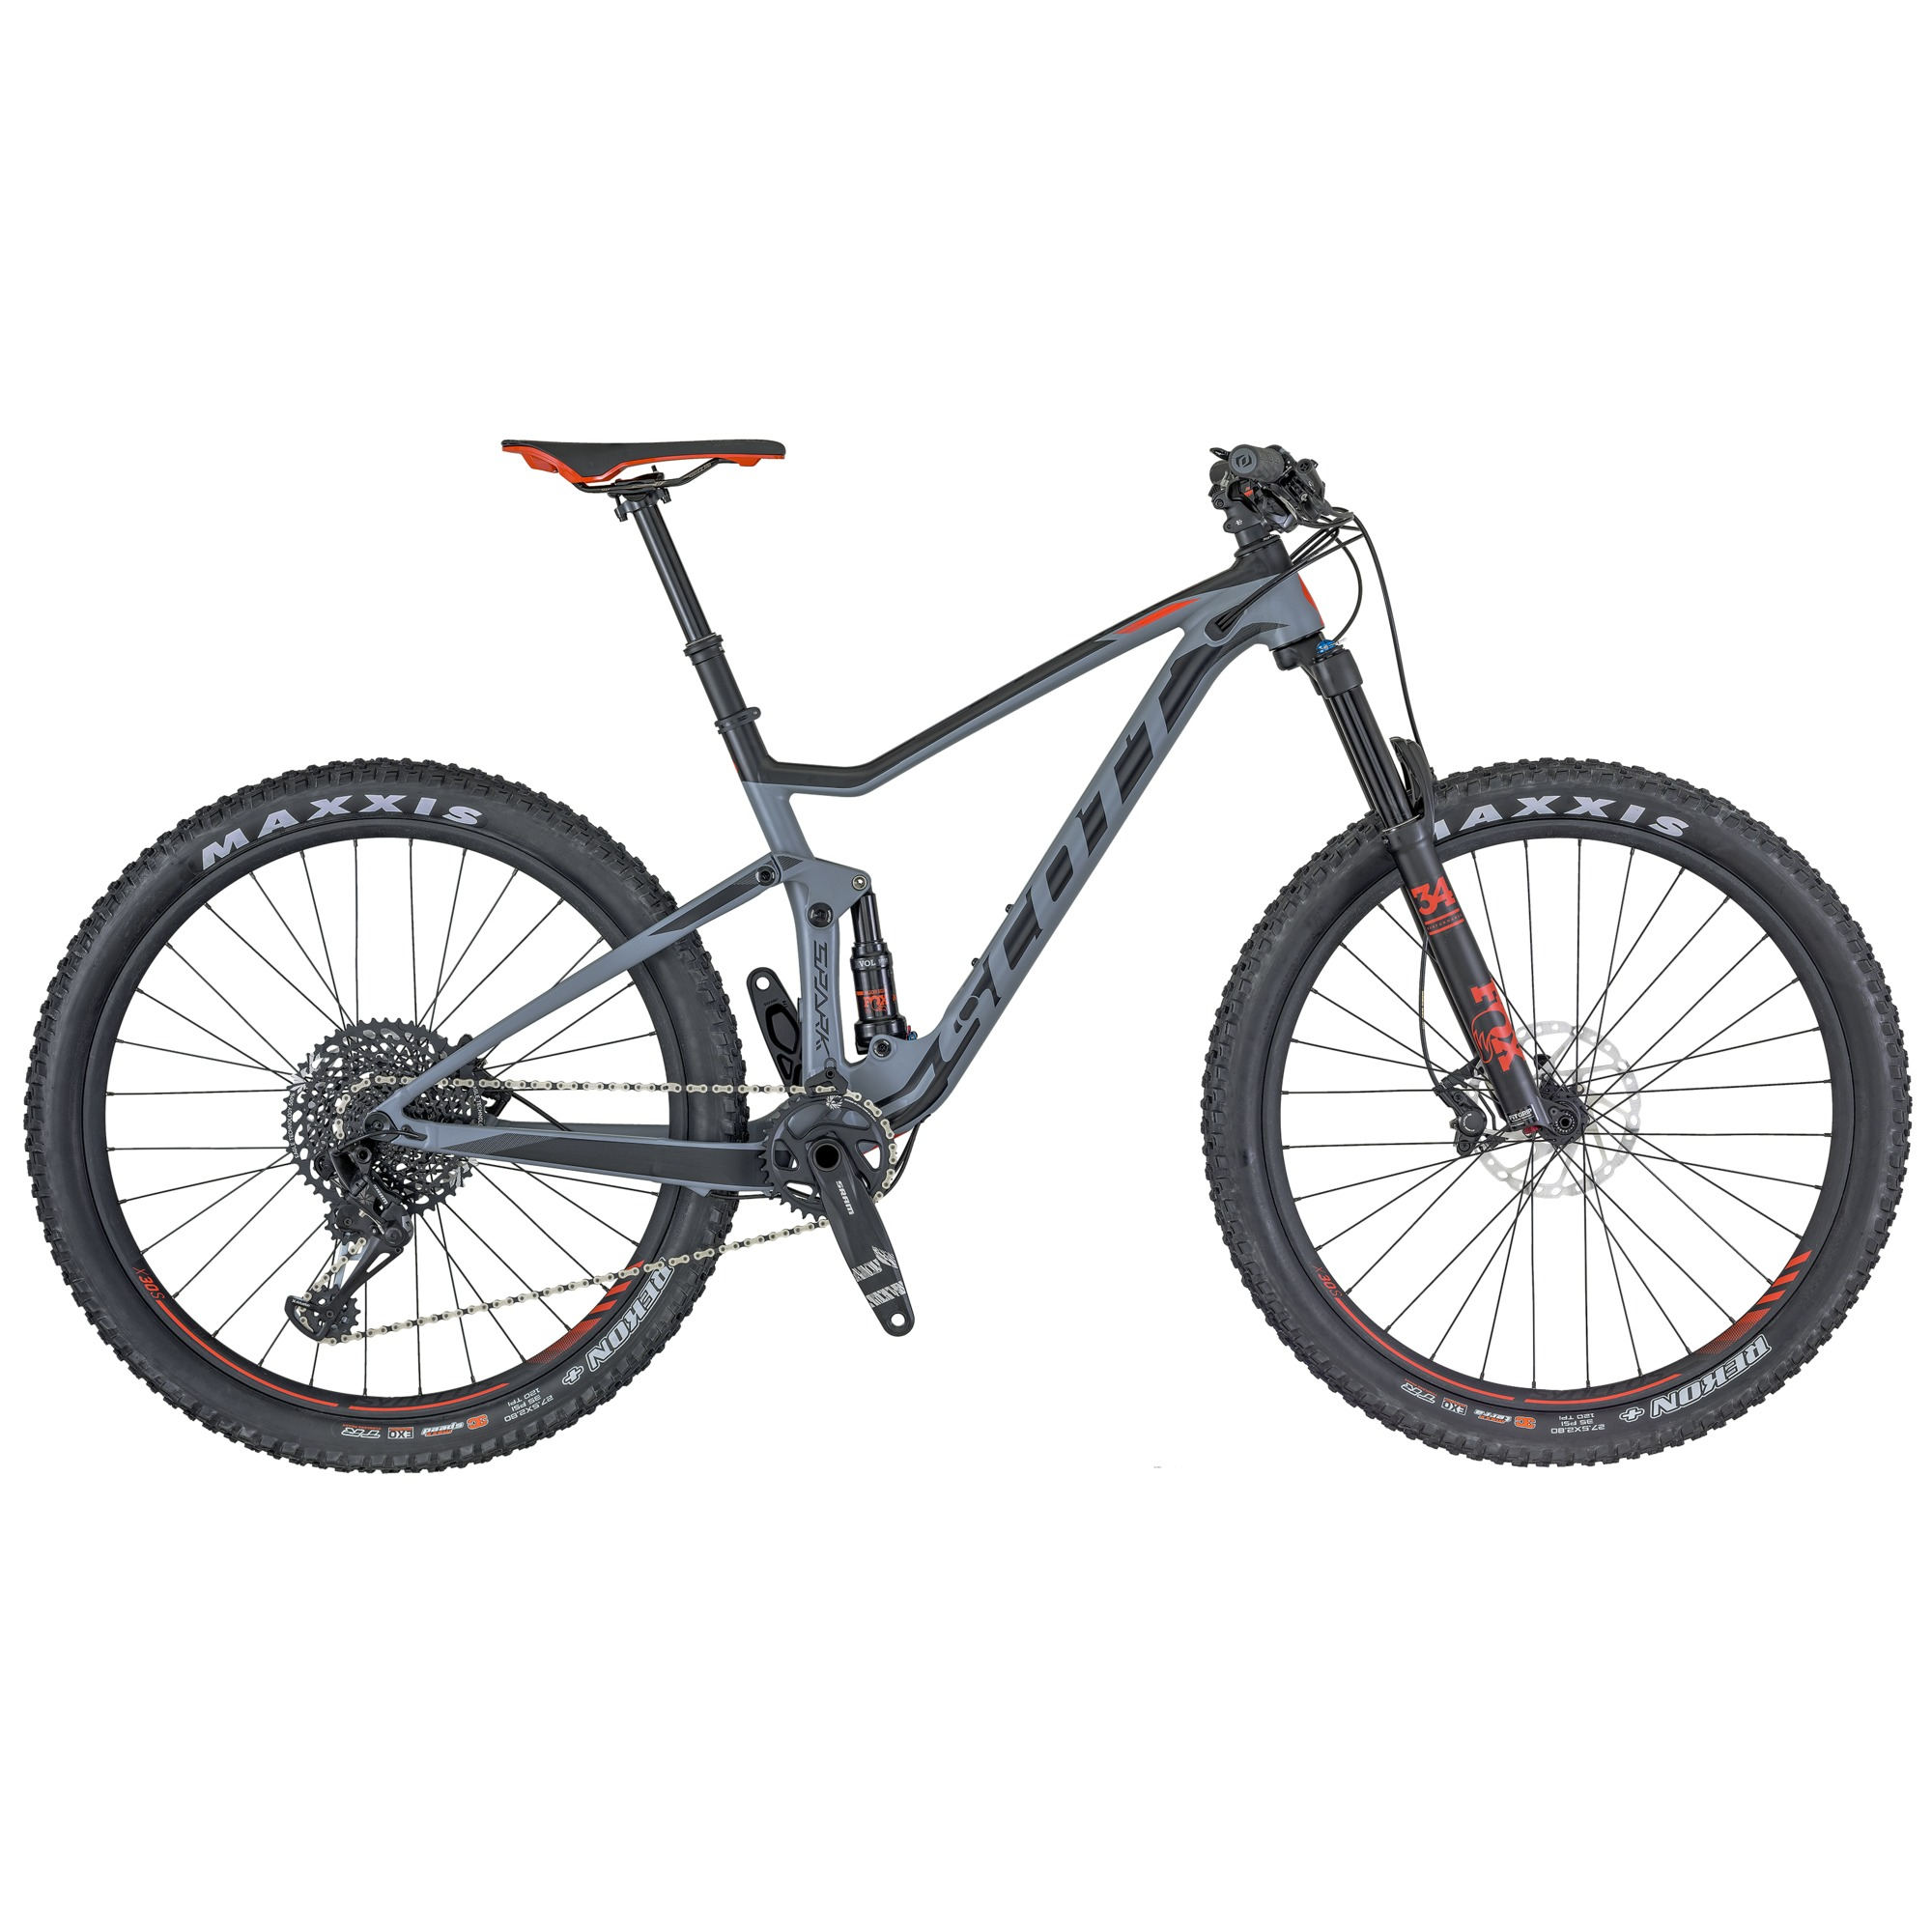 Road & Mountain Bikes for Sale - Lizard Head Cycling Guides